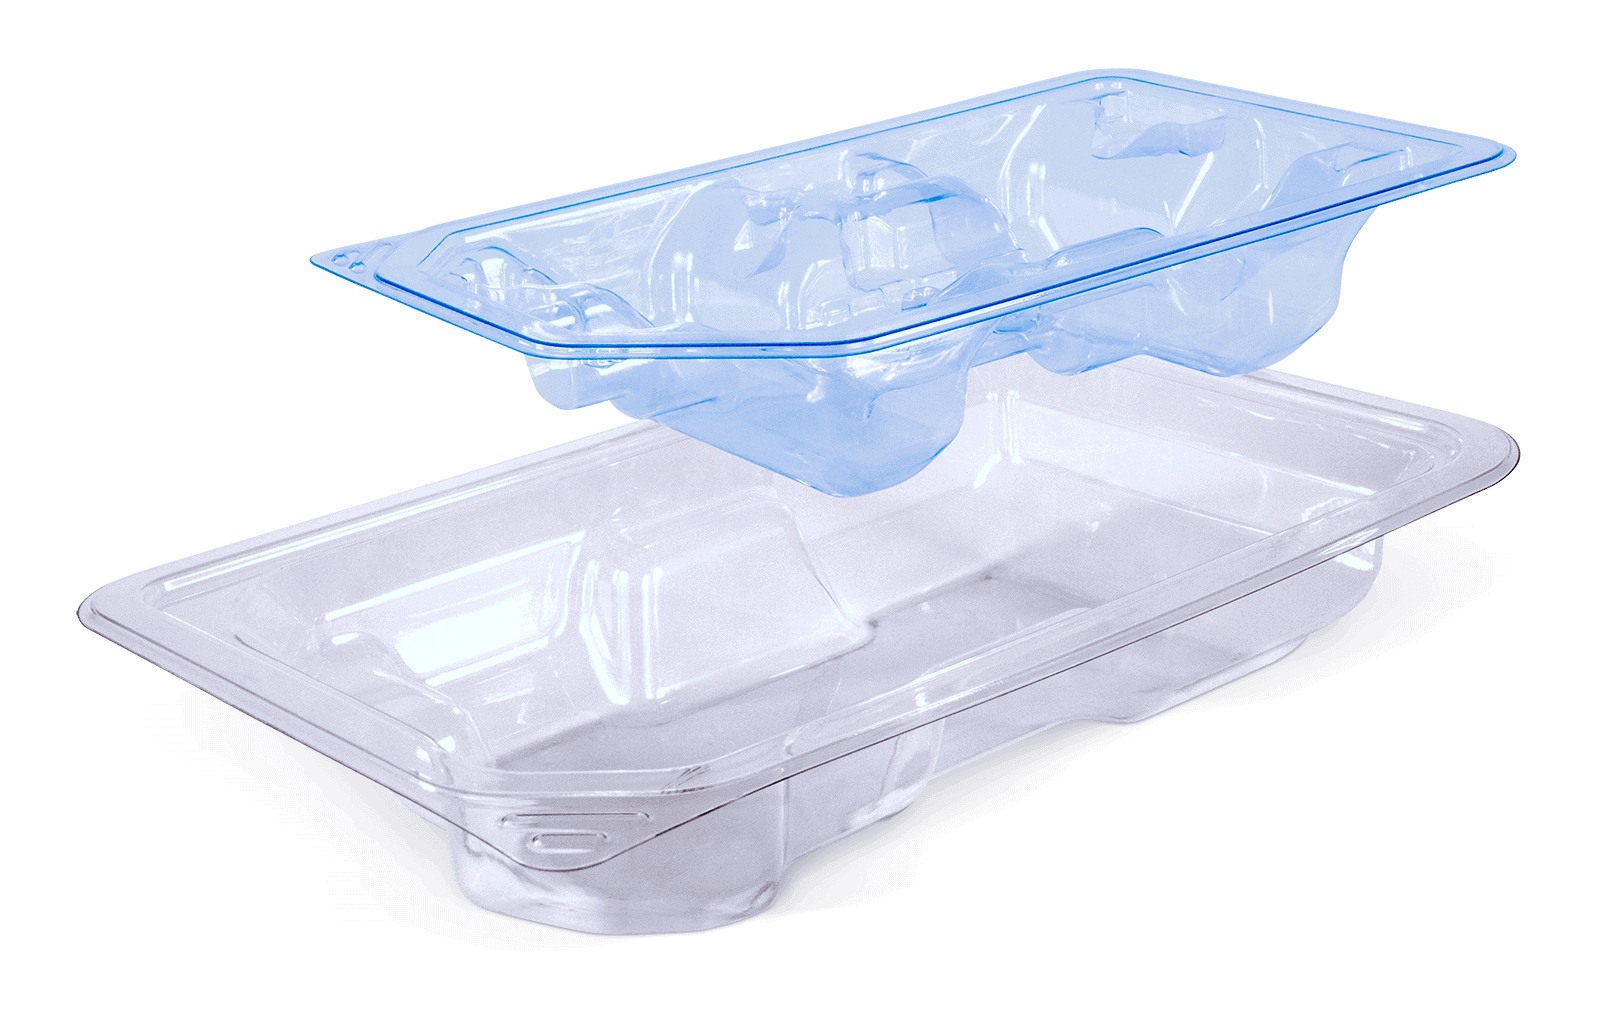 Clear Tray with Blue PETF Medical Device Insert